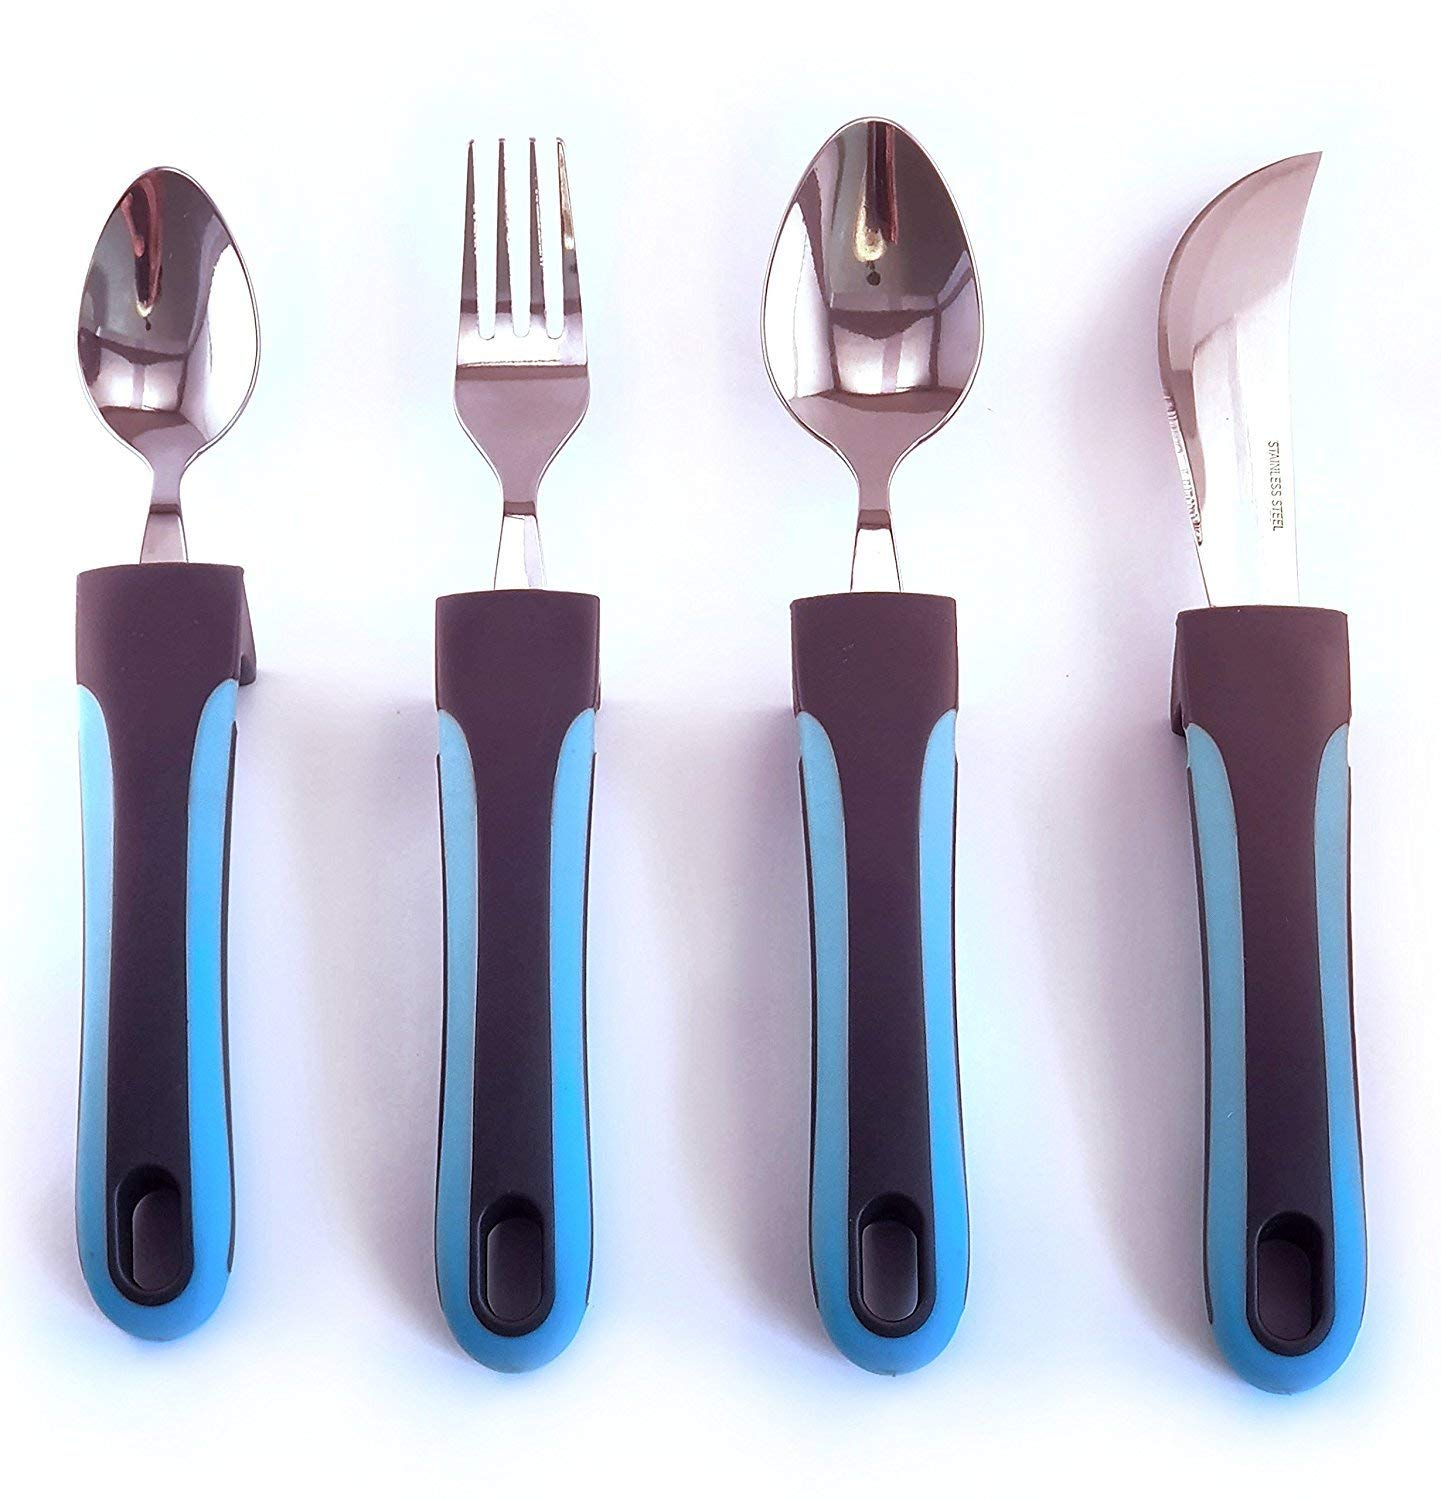 bunmo weighted utensils for tremors